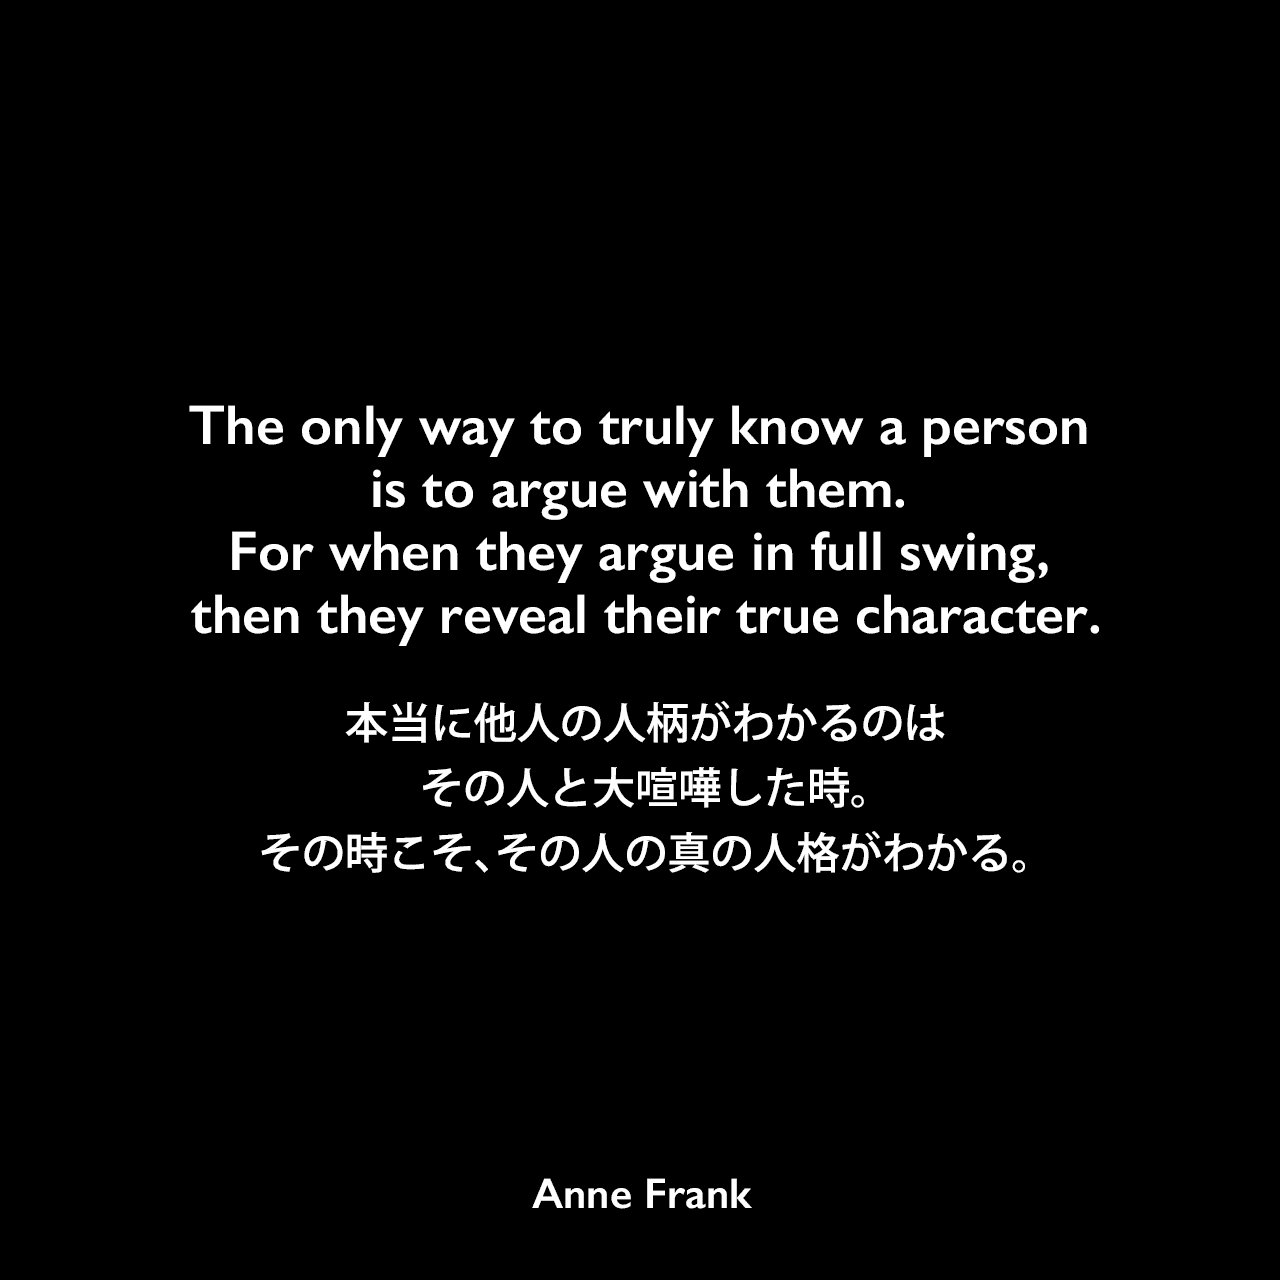 The only way to truly know a person is to argue with them. For when they argue in full swing, then they reveal their true character.本当に他人の人柄がわかるのは、その人と大喧嘩した時。その時こそ、その人の真の人格がわかる。- 「アンネの日記」よりAnne Frank